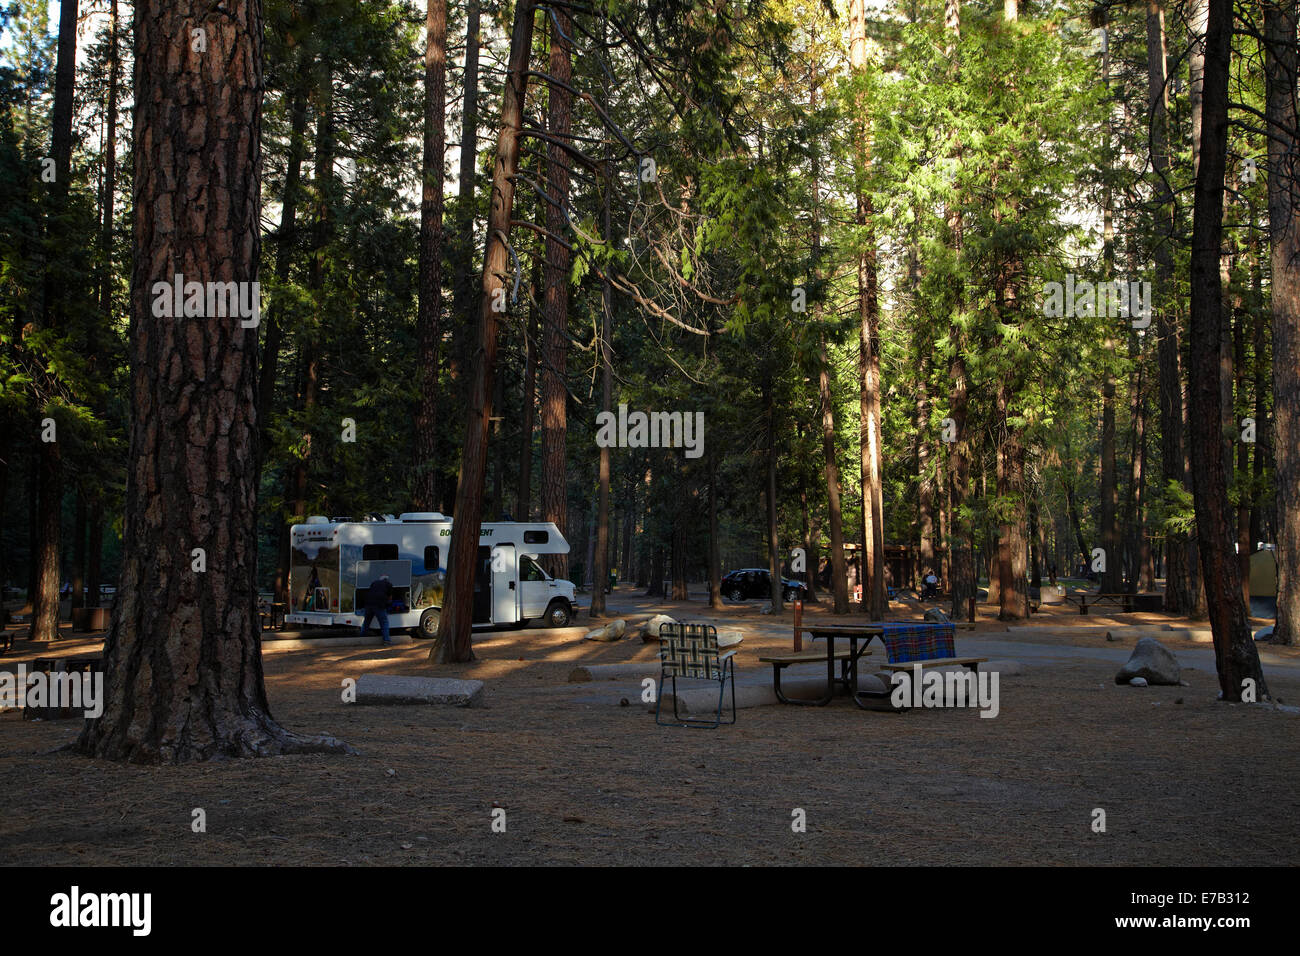 upper pines campground, yosemite valley, yosemite national park